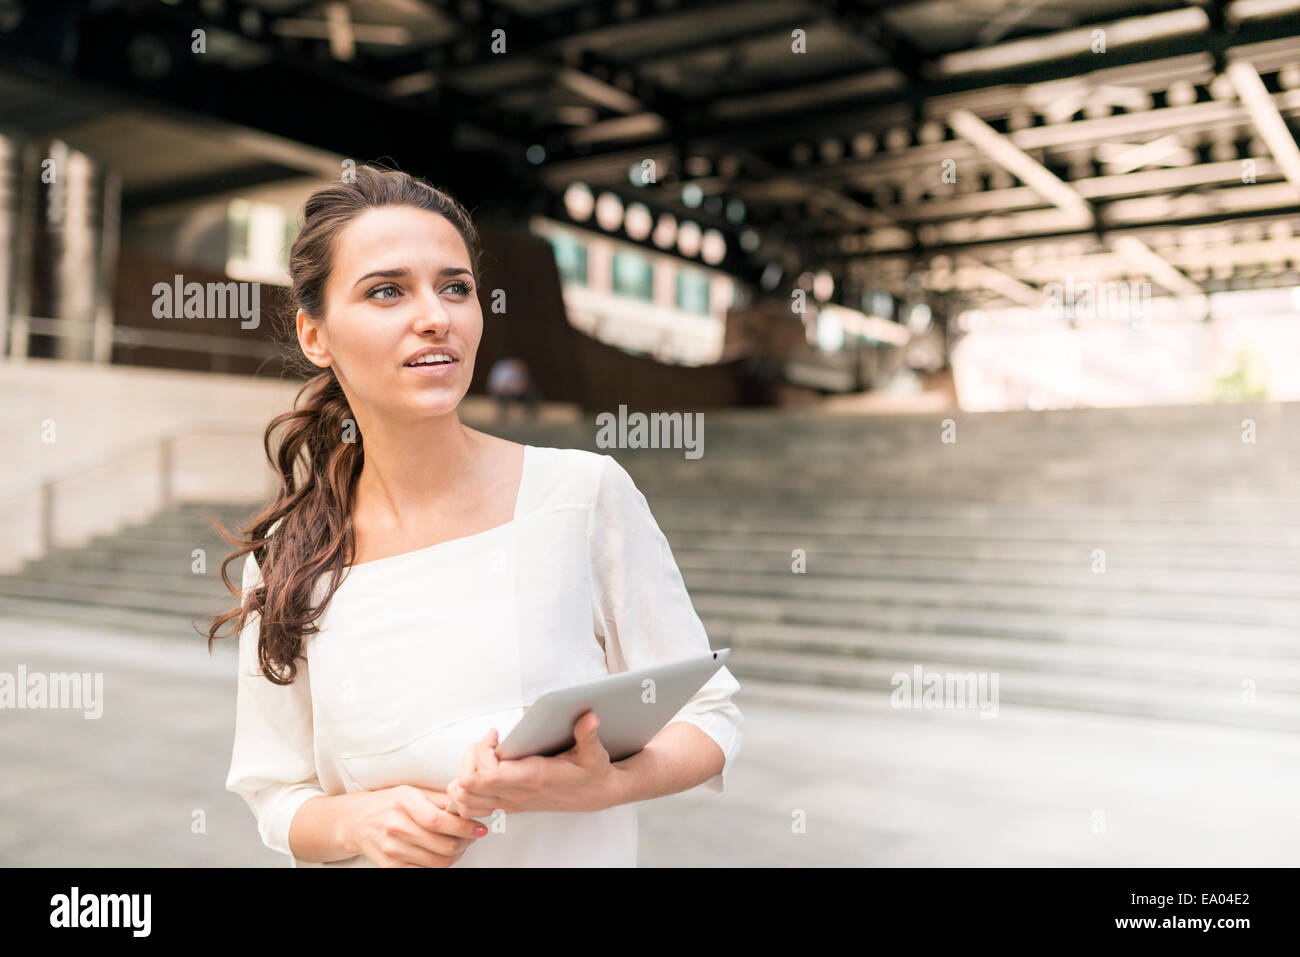 businesswoman waiting outside station with digital tablet, London, UK - Stock Image